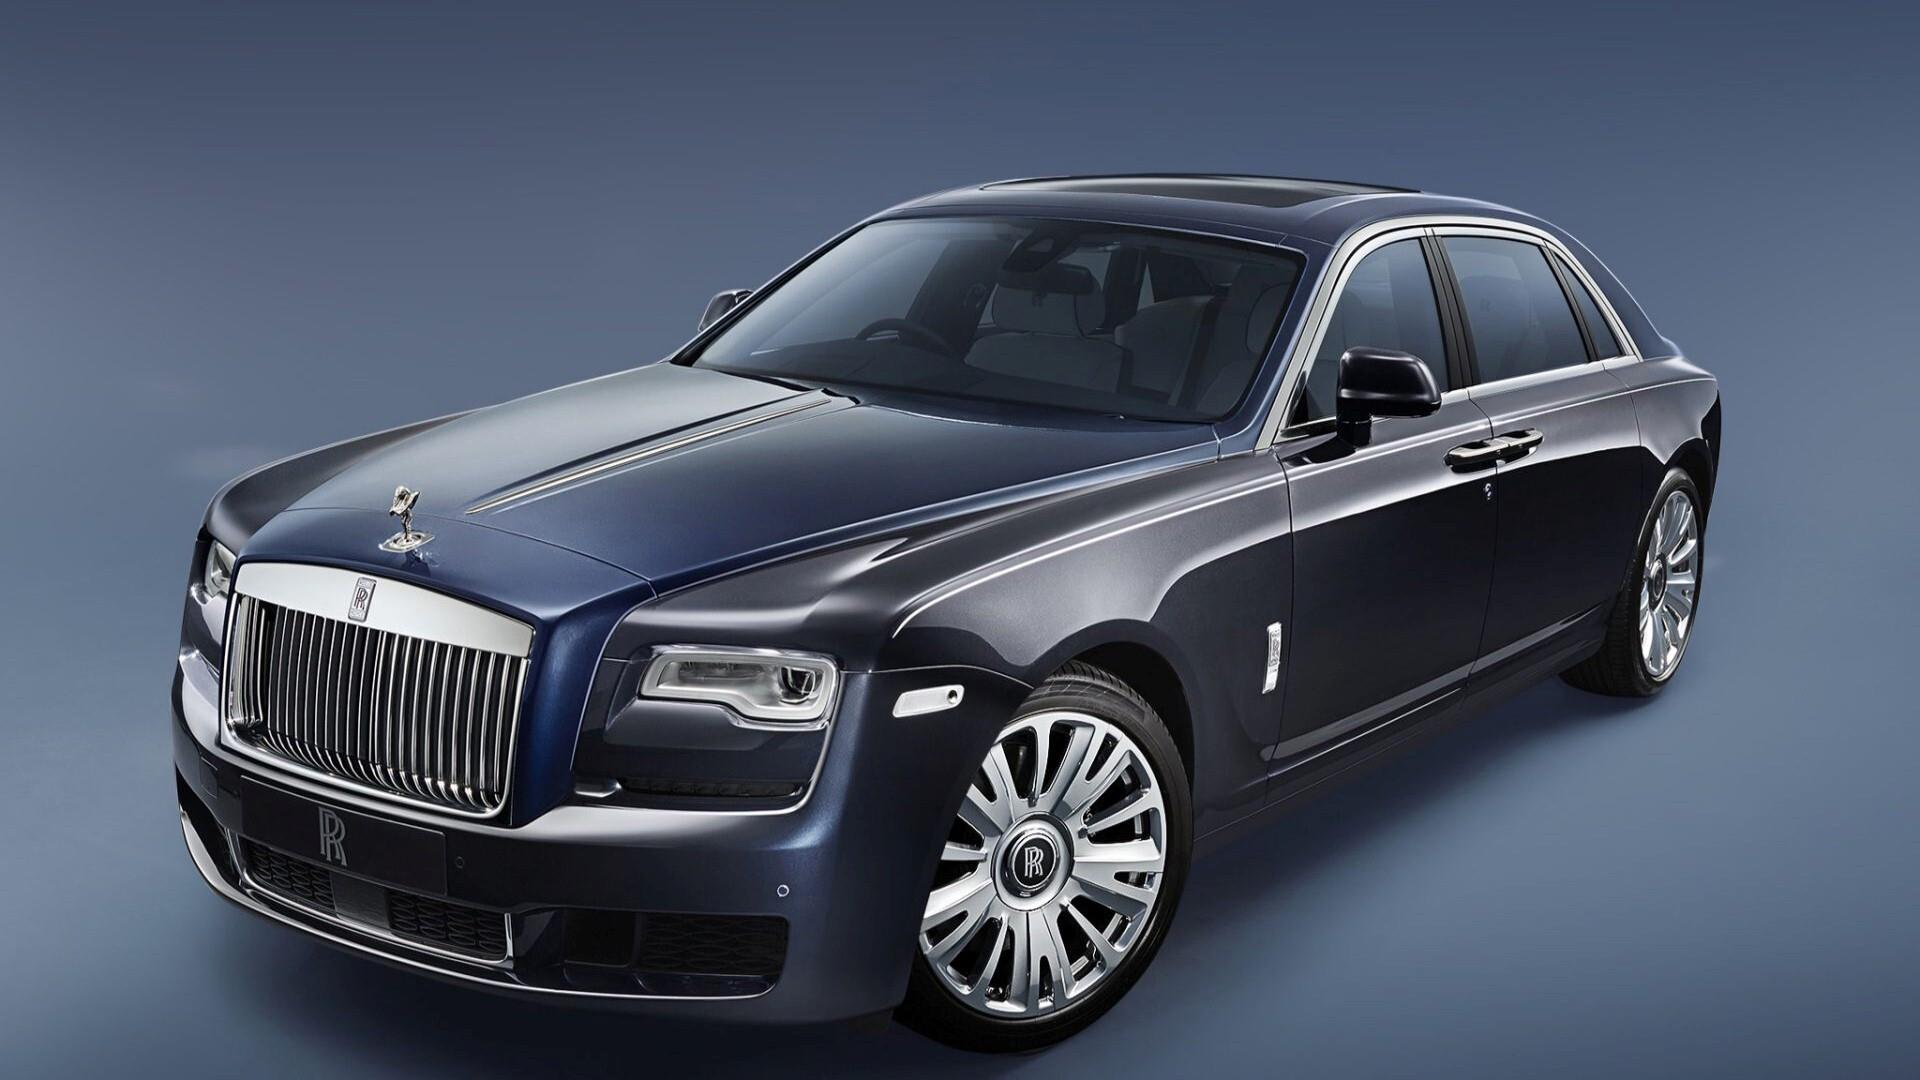 1920x1080 2018 Rolls Royce Ghost Series II Black Car